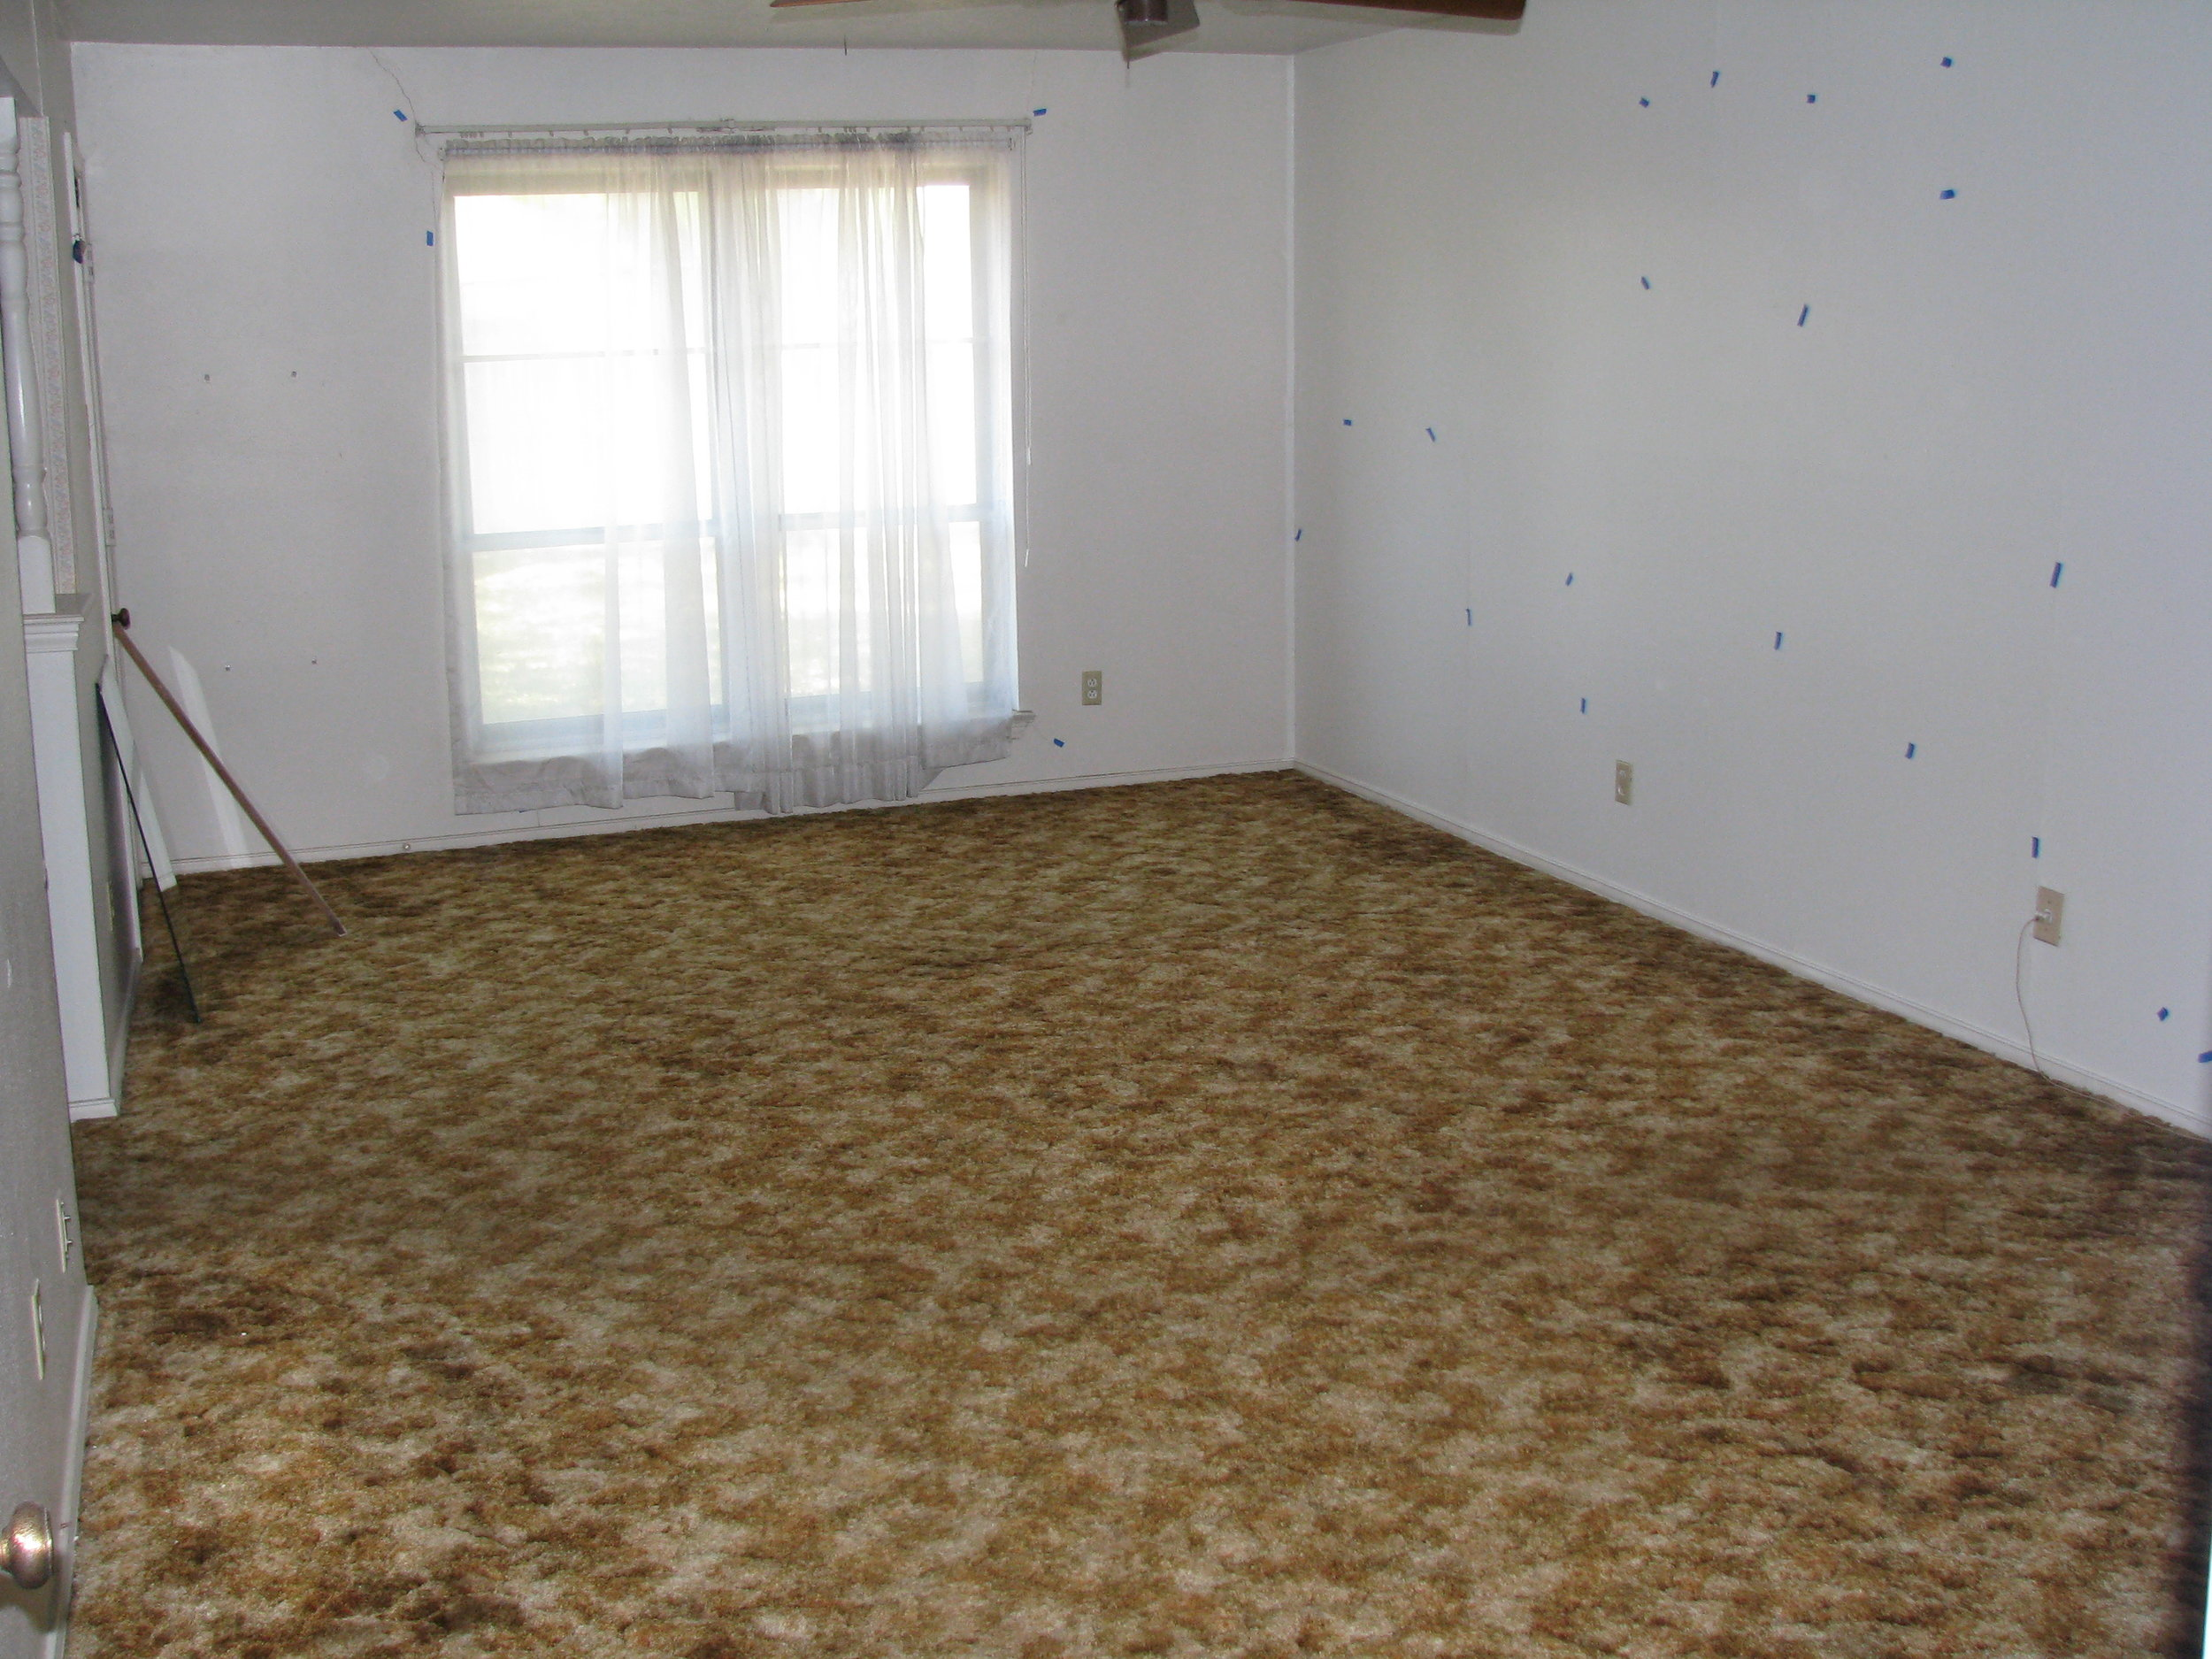 The master bedroom before